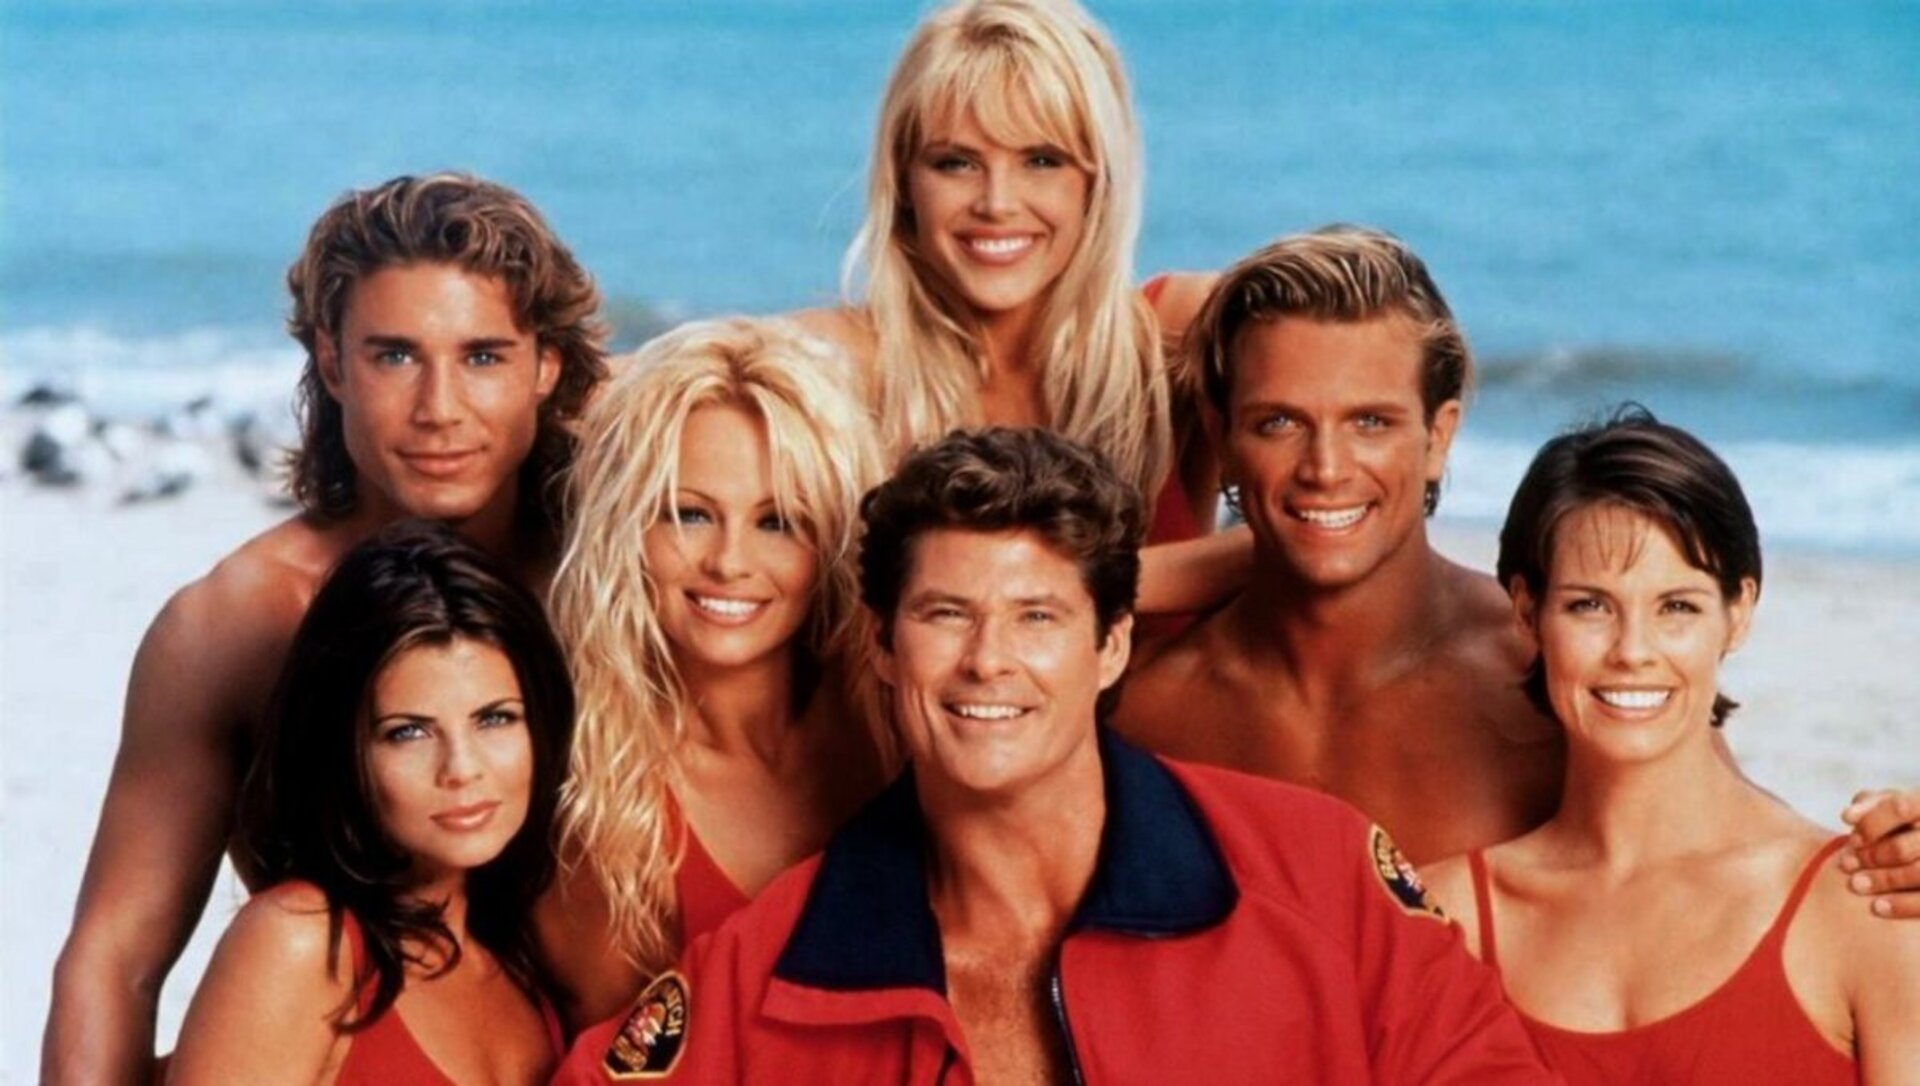 Donna D'Errico, David Hasselhoff, Pamela Anderson… Whatever happened to the Baywatch cast?